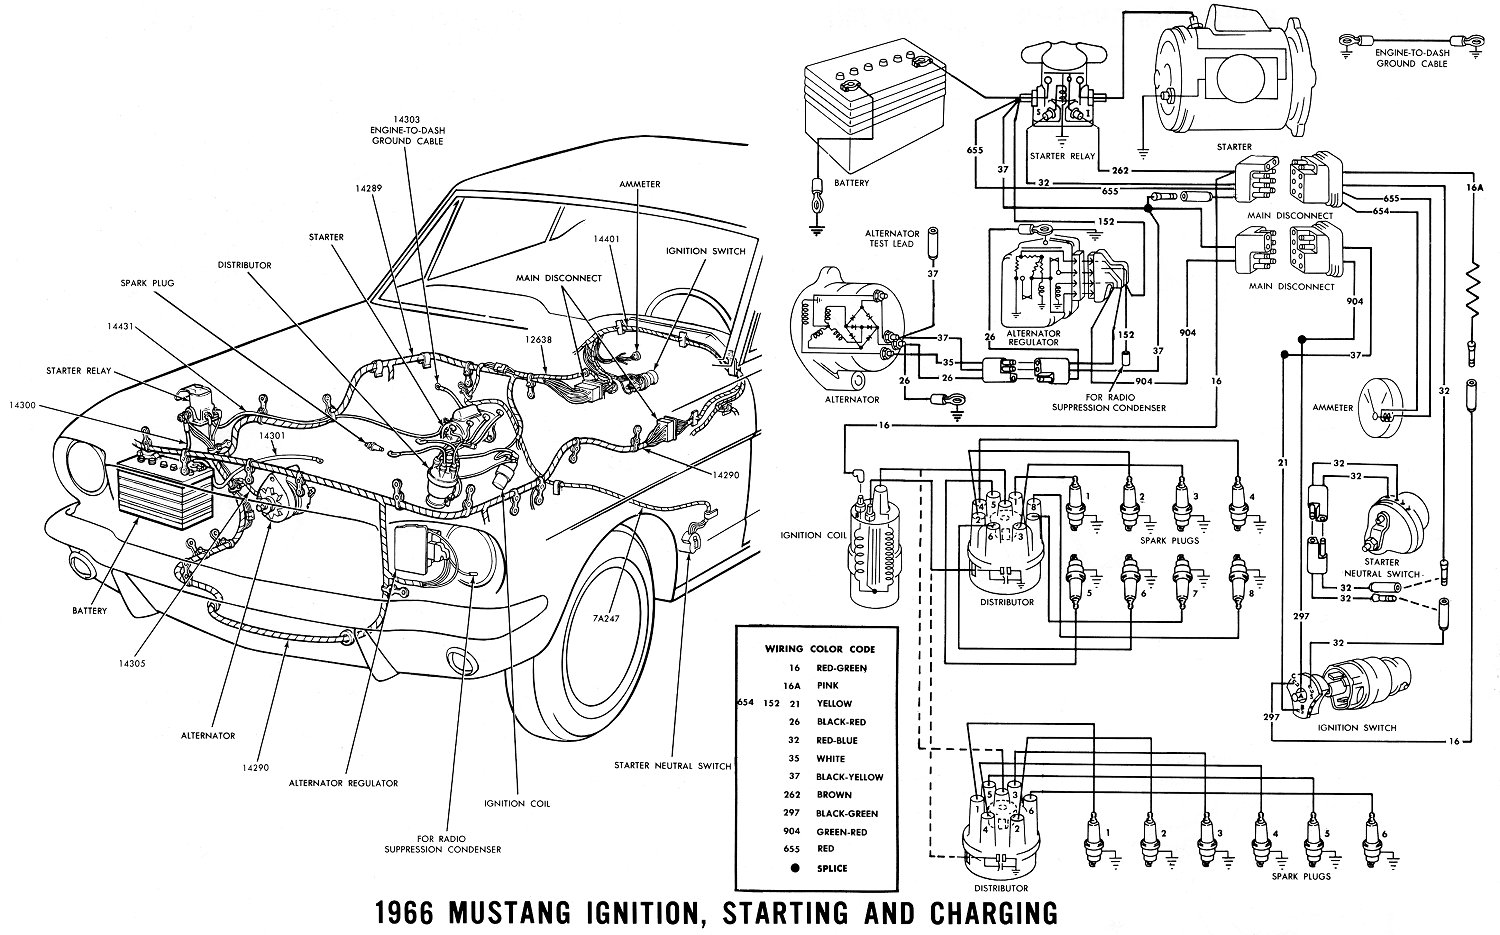 1968 ford mustang ignition wiring wiring diagram05 mustang wiring harness wiring diagram progresif05 mustang wiring harness data wiring diagram update mustang wiring